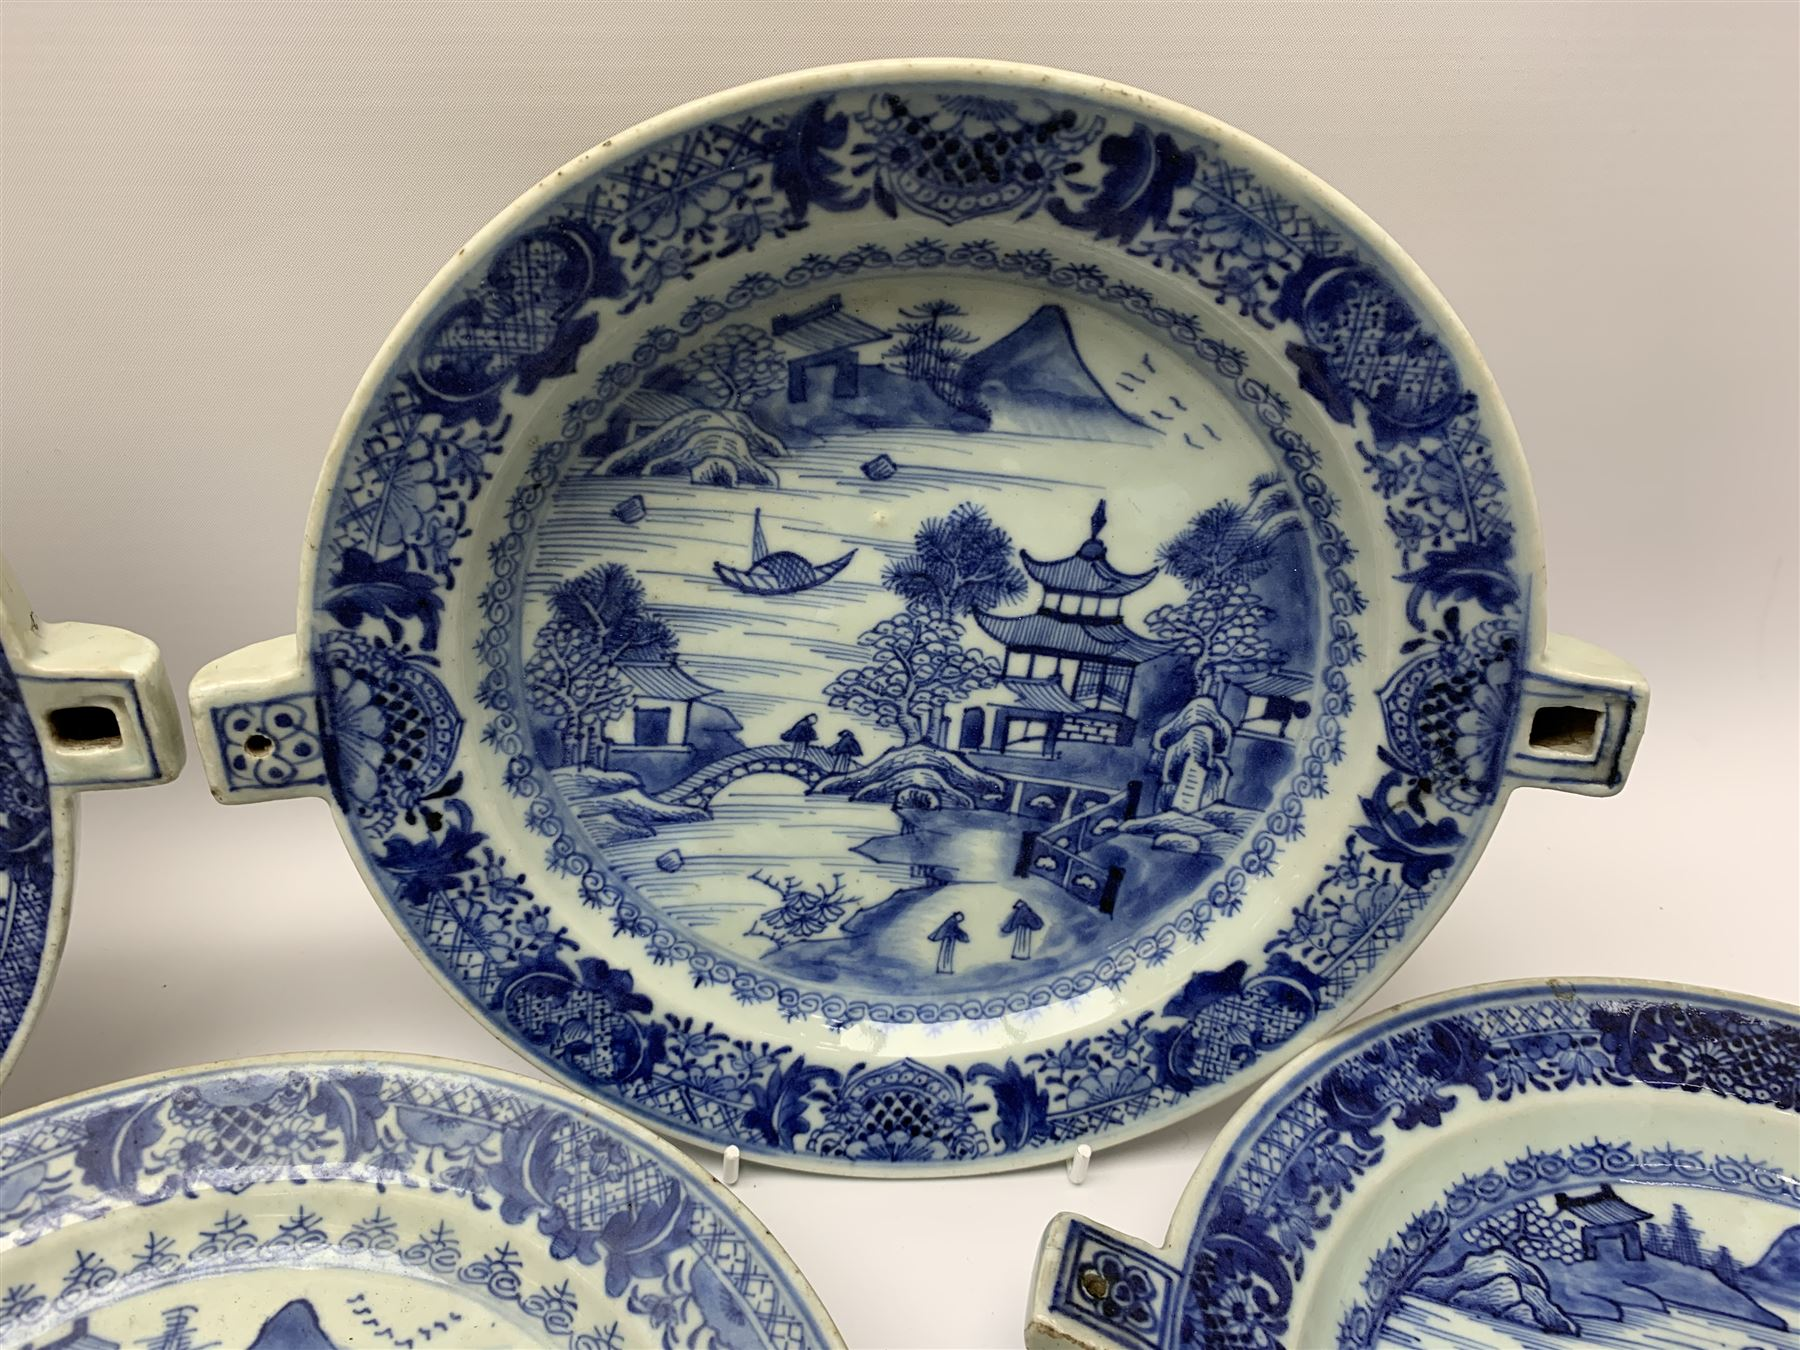 Set of seven late 18th/early 19th century Chinese export blue and white hot water plates - Image 9 of 11